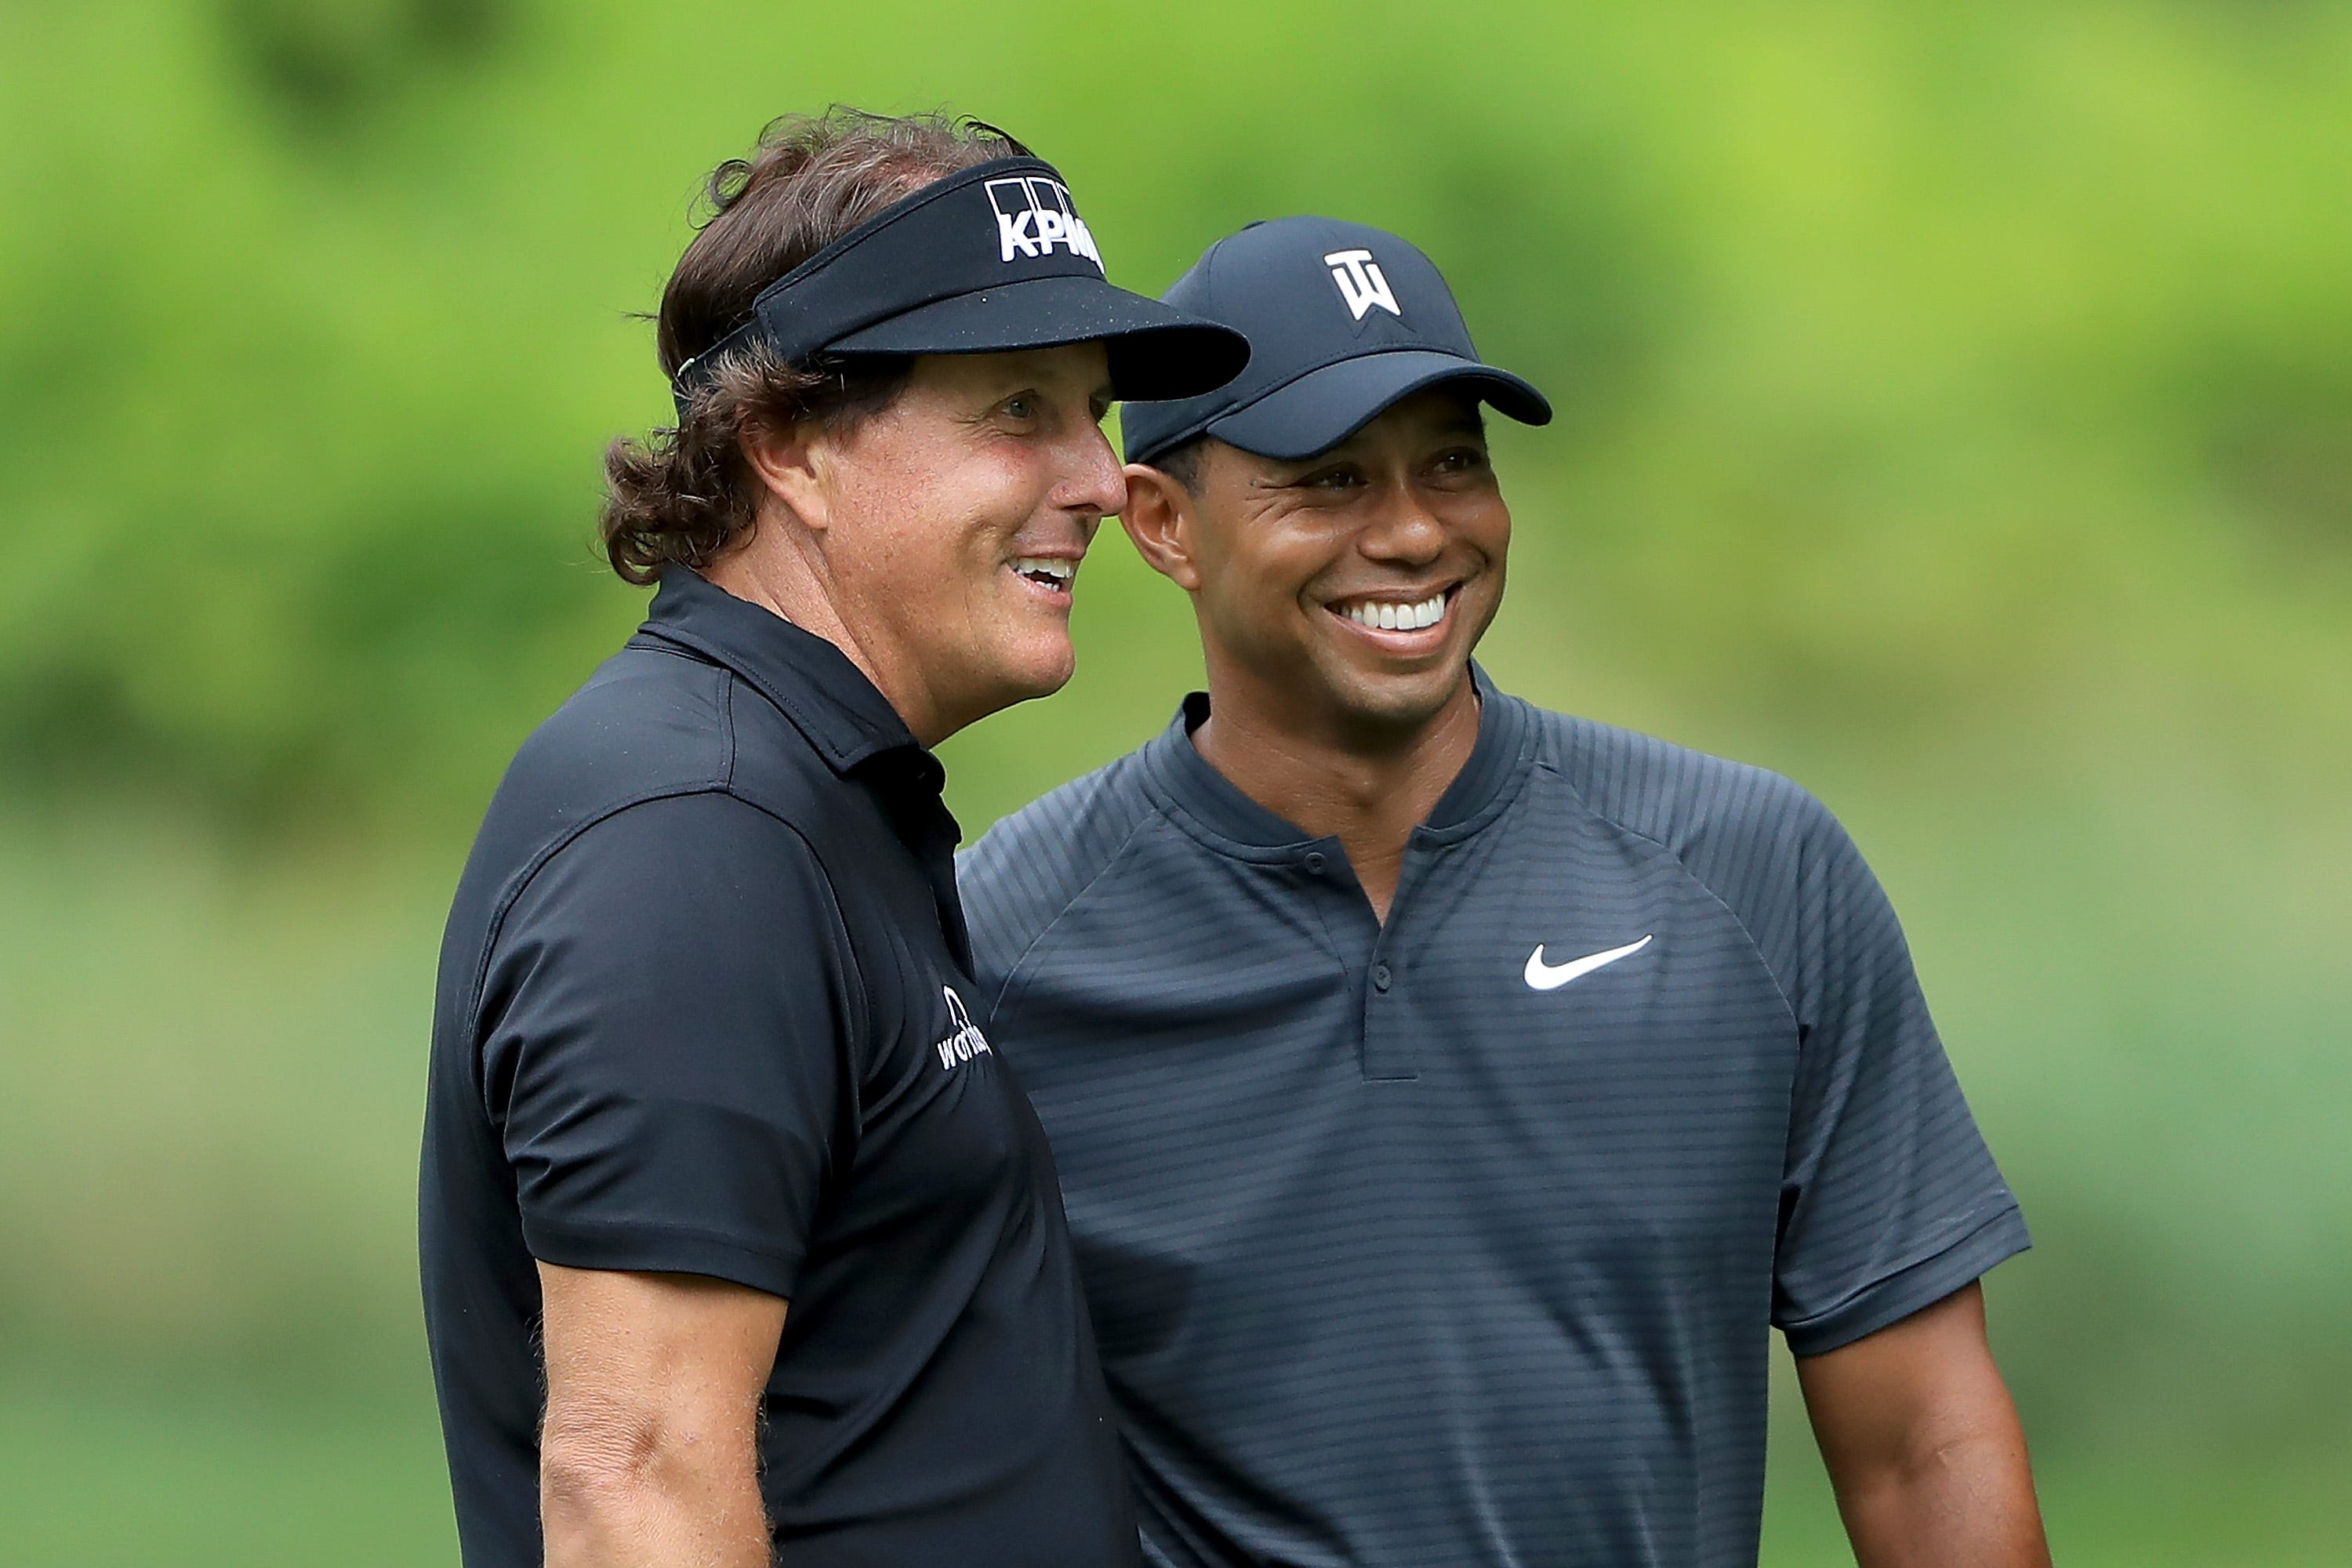 Master Tiger Woods Phil Mickelson